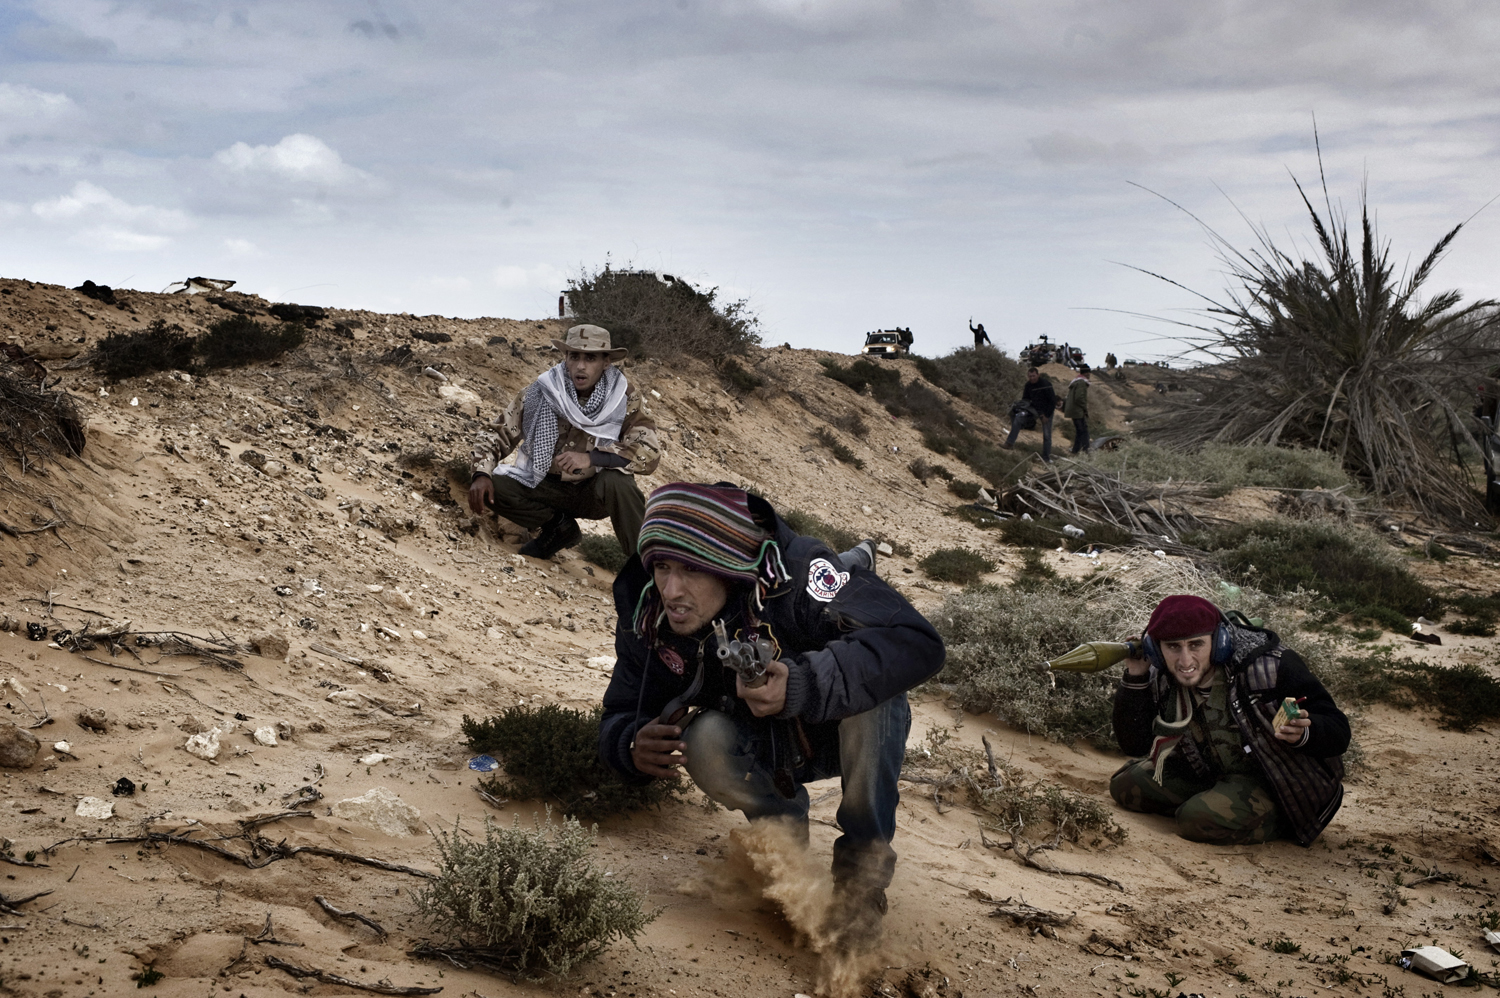 Rebels take cover while battling government troops in Ras Lanuf, March 9, 2011.